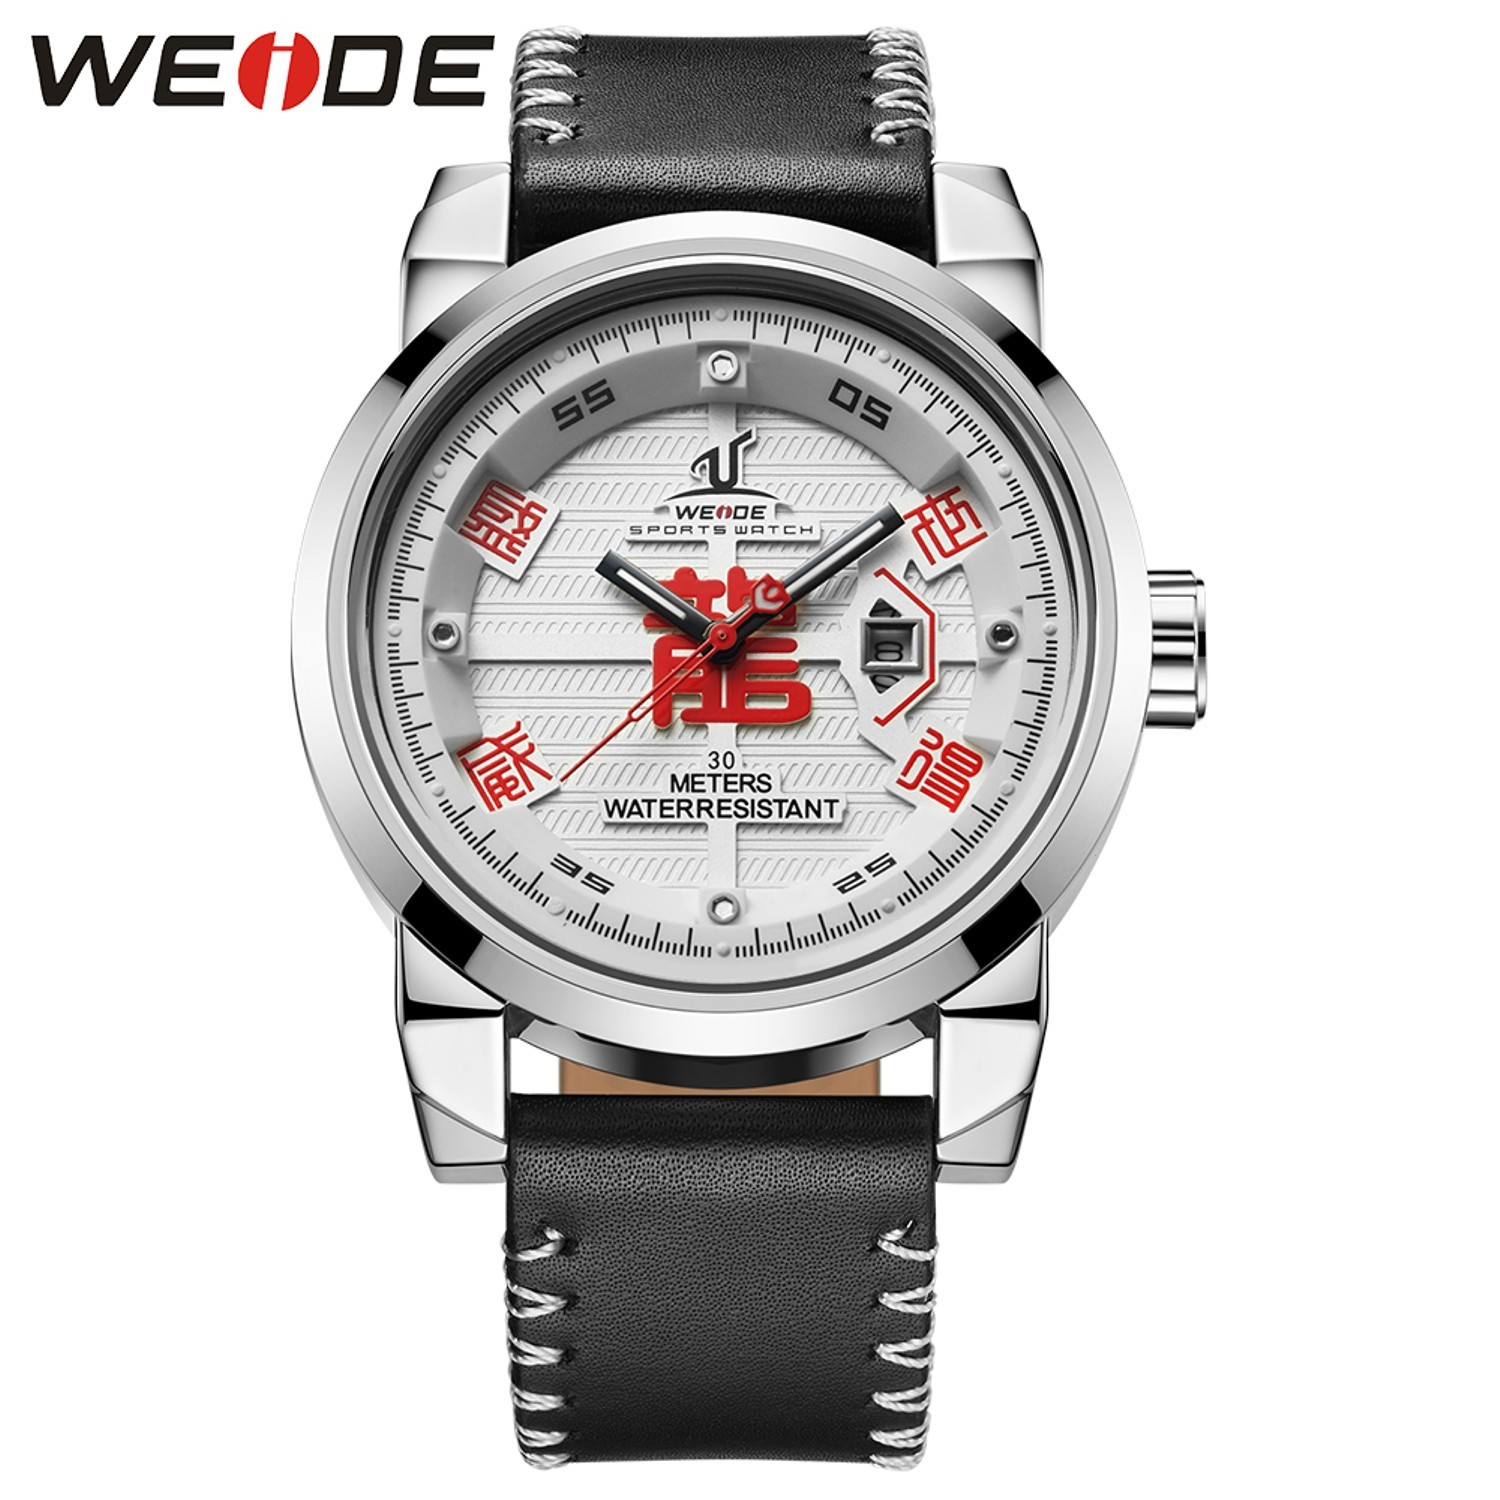 WEIDE-Men-Sport-Watches-Relogio-Masculino-Analog-Auto-Date-Calendar-Dial-Display-White-Dial-Leather-Strap_1500x1500_STRETCH_618.jpg